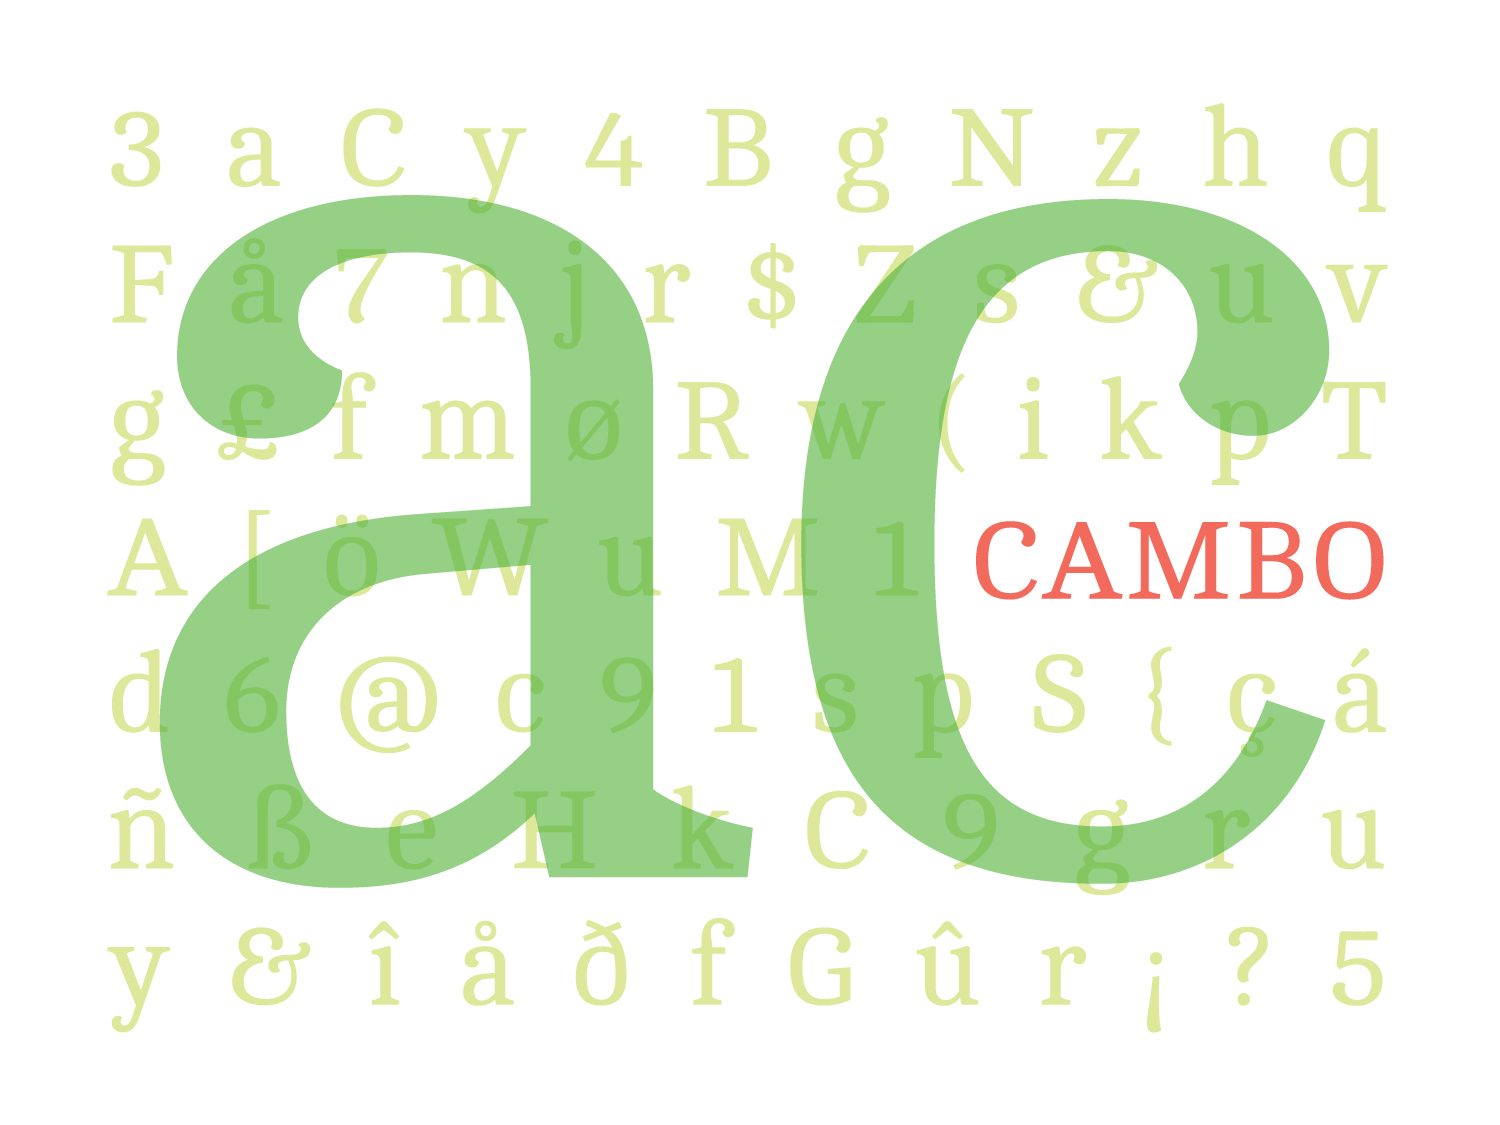 Cambo Font